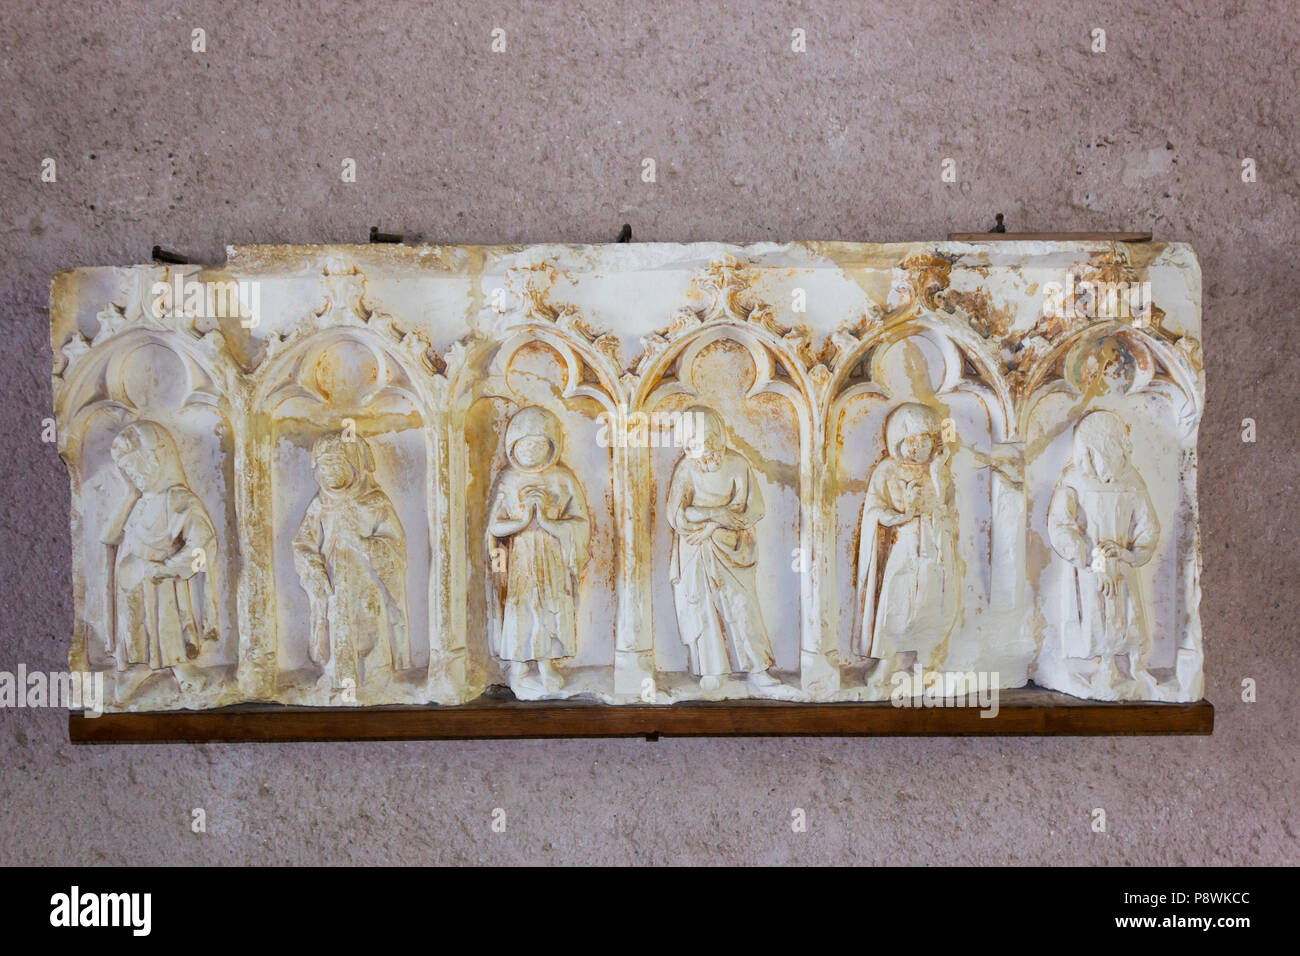 The medieval Cité of Carcassonne, French department of Aude, Occitanie Region, France. Inside the Chateau Comtal. Fragment of the exterior cornice - Stock Image